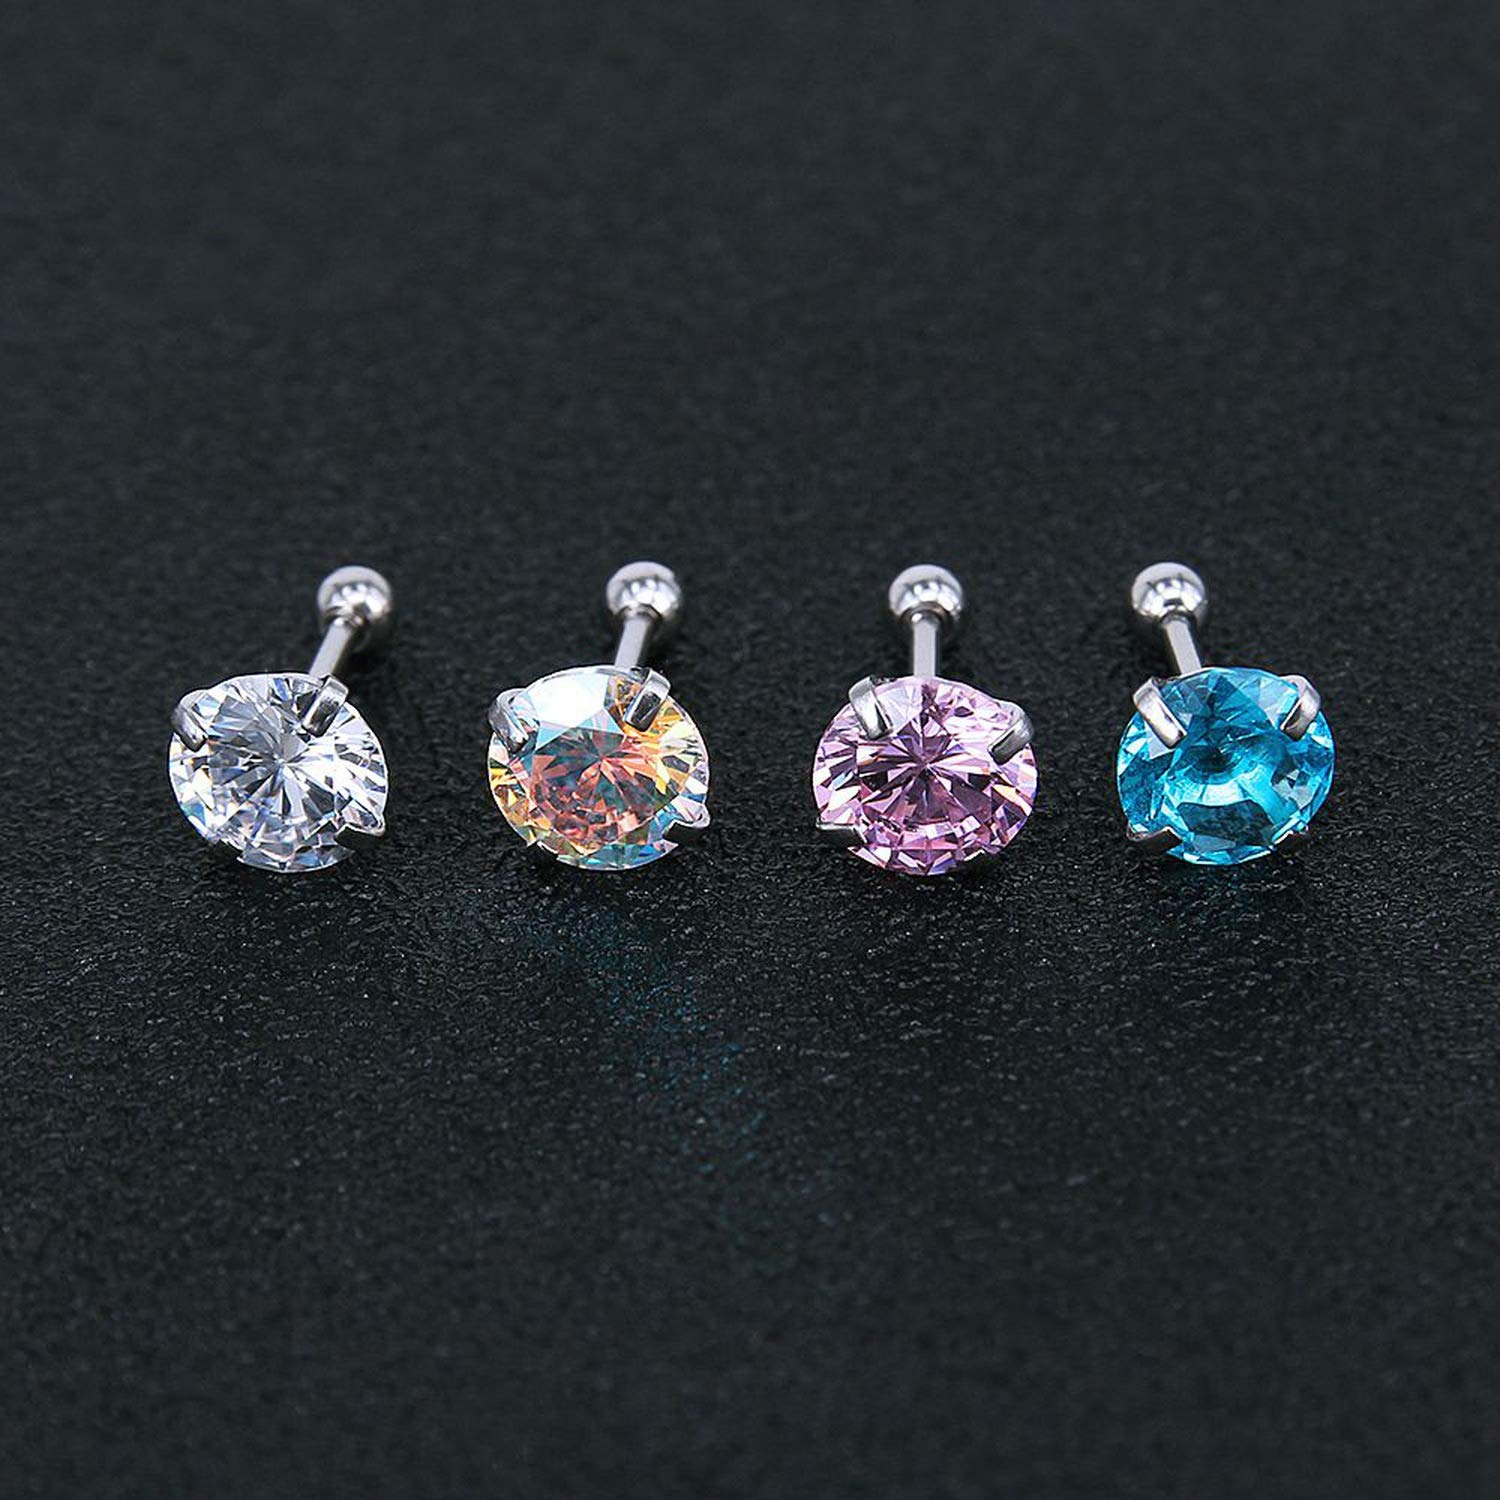 Tiny Round Crystal Studs Earrings Screw Ball Stainless Steel Female Earrings Mini,Pink Round,8mm